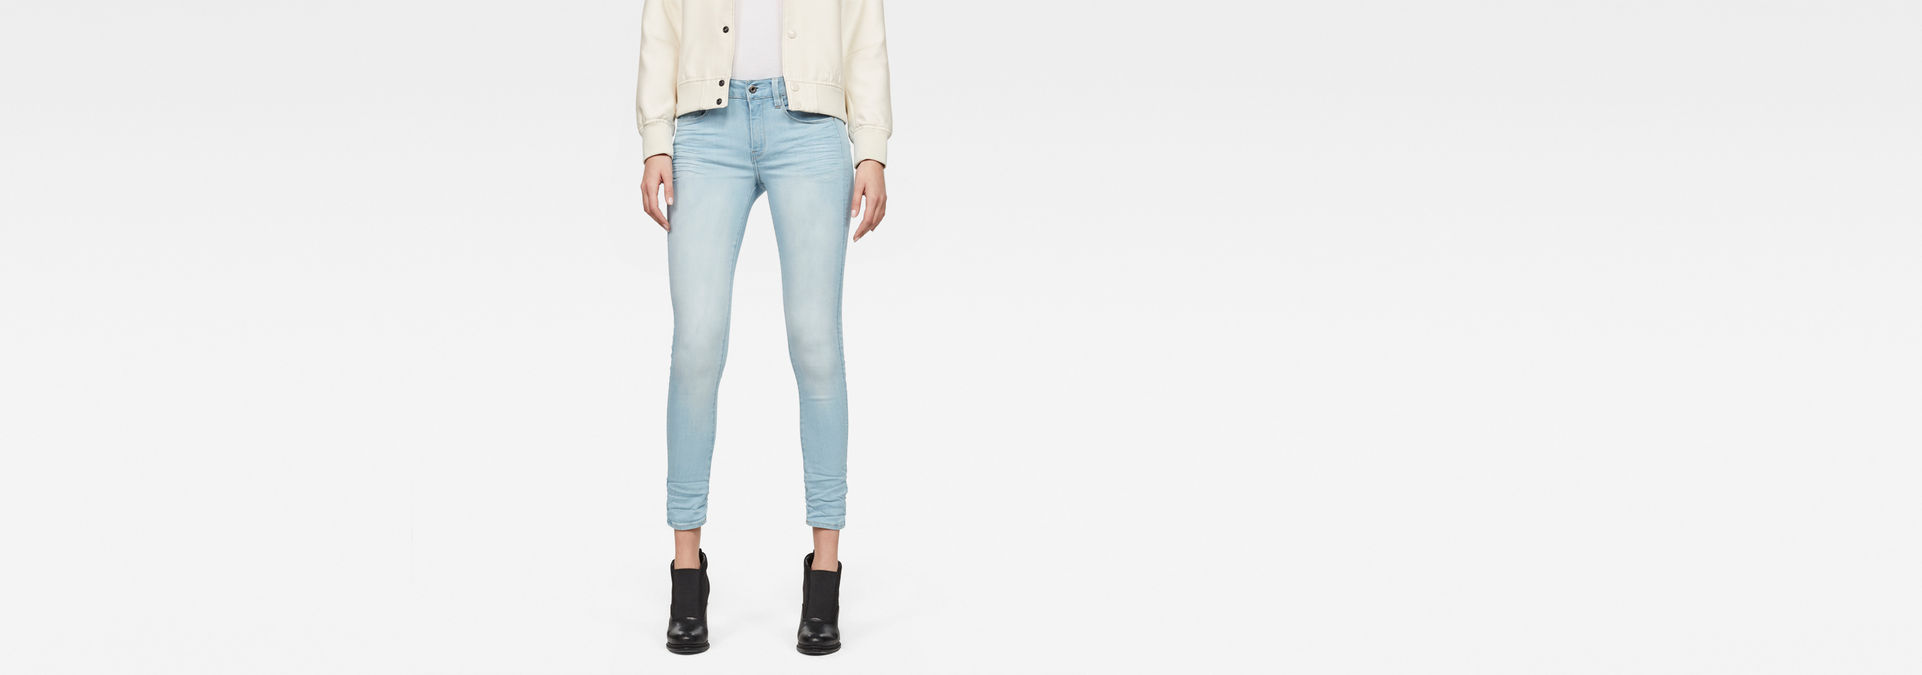 e2ca6bcb34e 3301 D-Mid Skinny Ankle Jeans | Light Aged | Women | G-Star RAW®